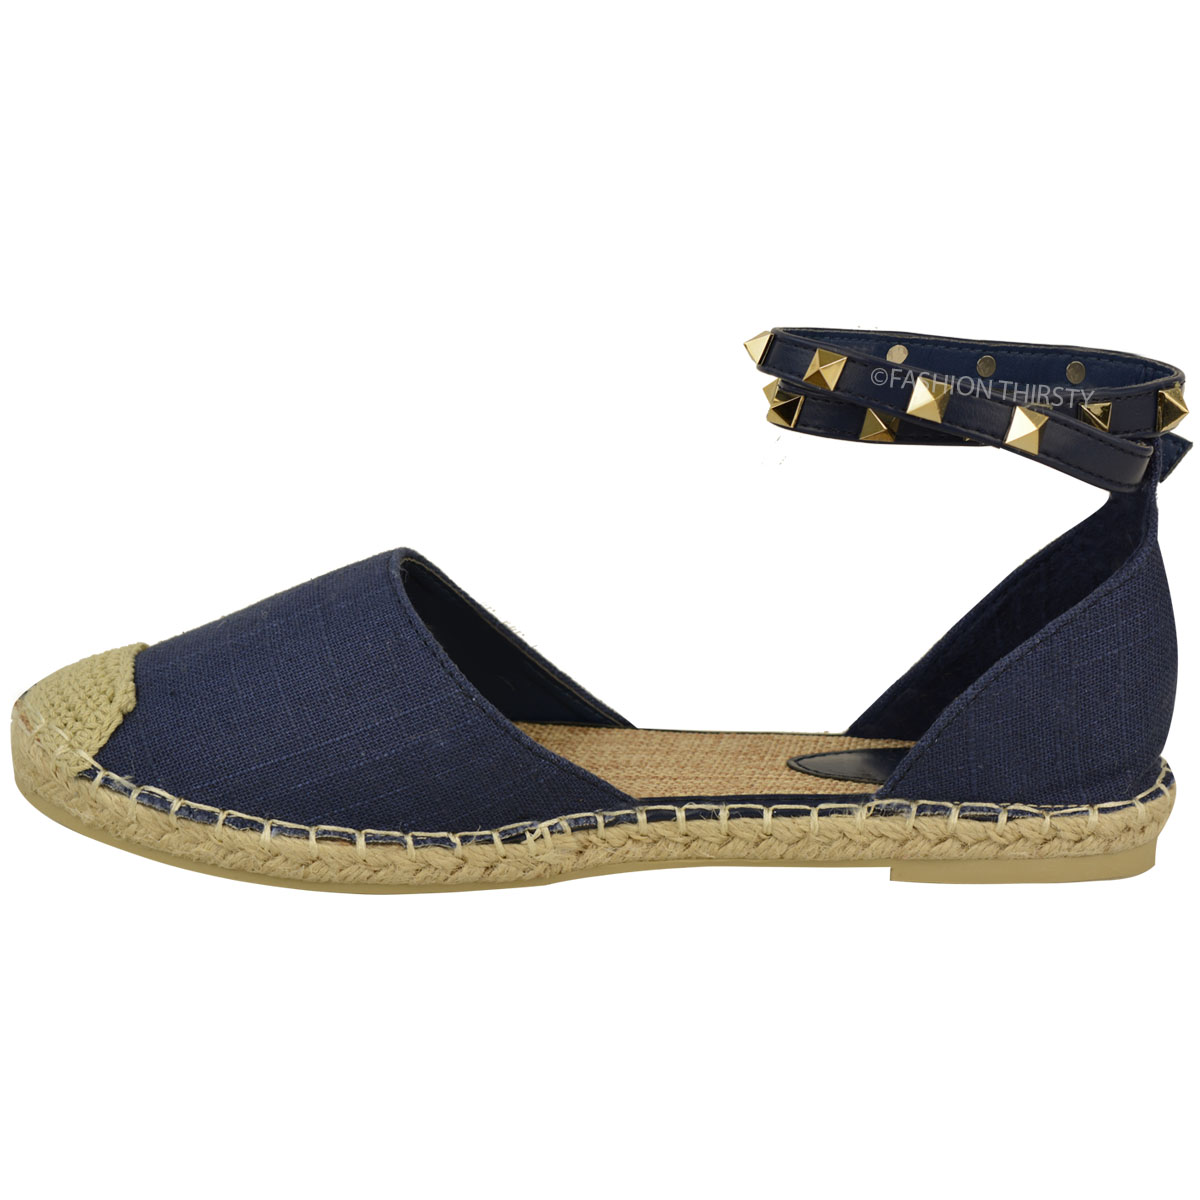 damen espadrilles sandalen mit nieten am kn chelriemchen flache sommer schuhe ebay. Black Bedroom Furniture Sets. Home Design Ideas